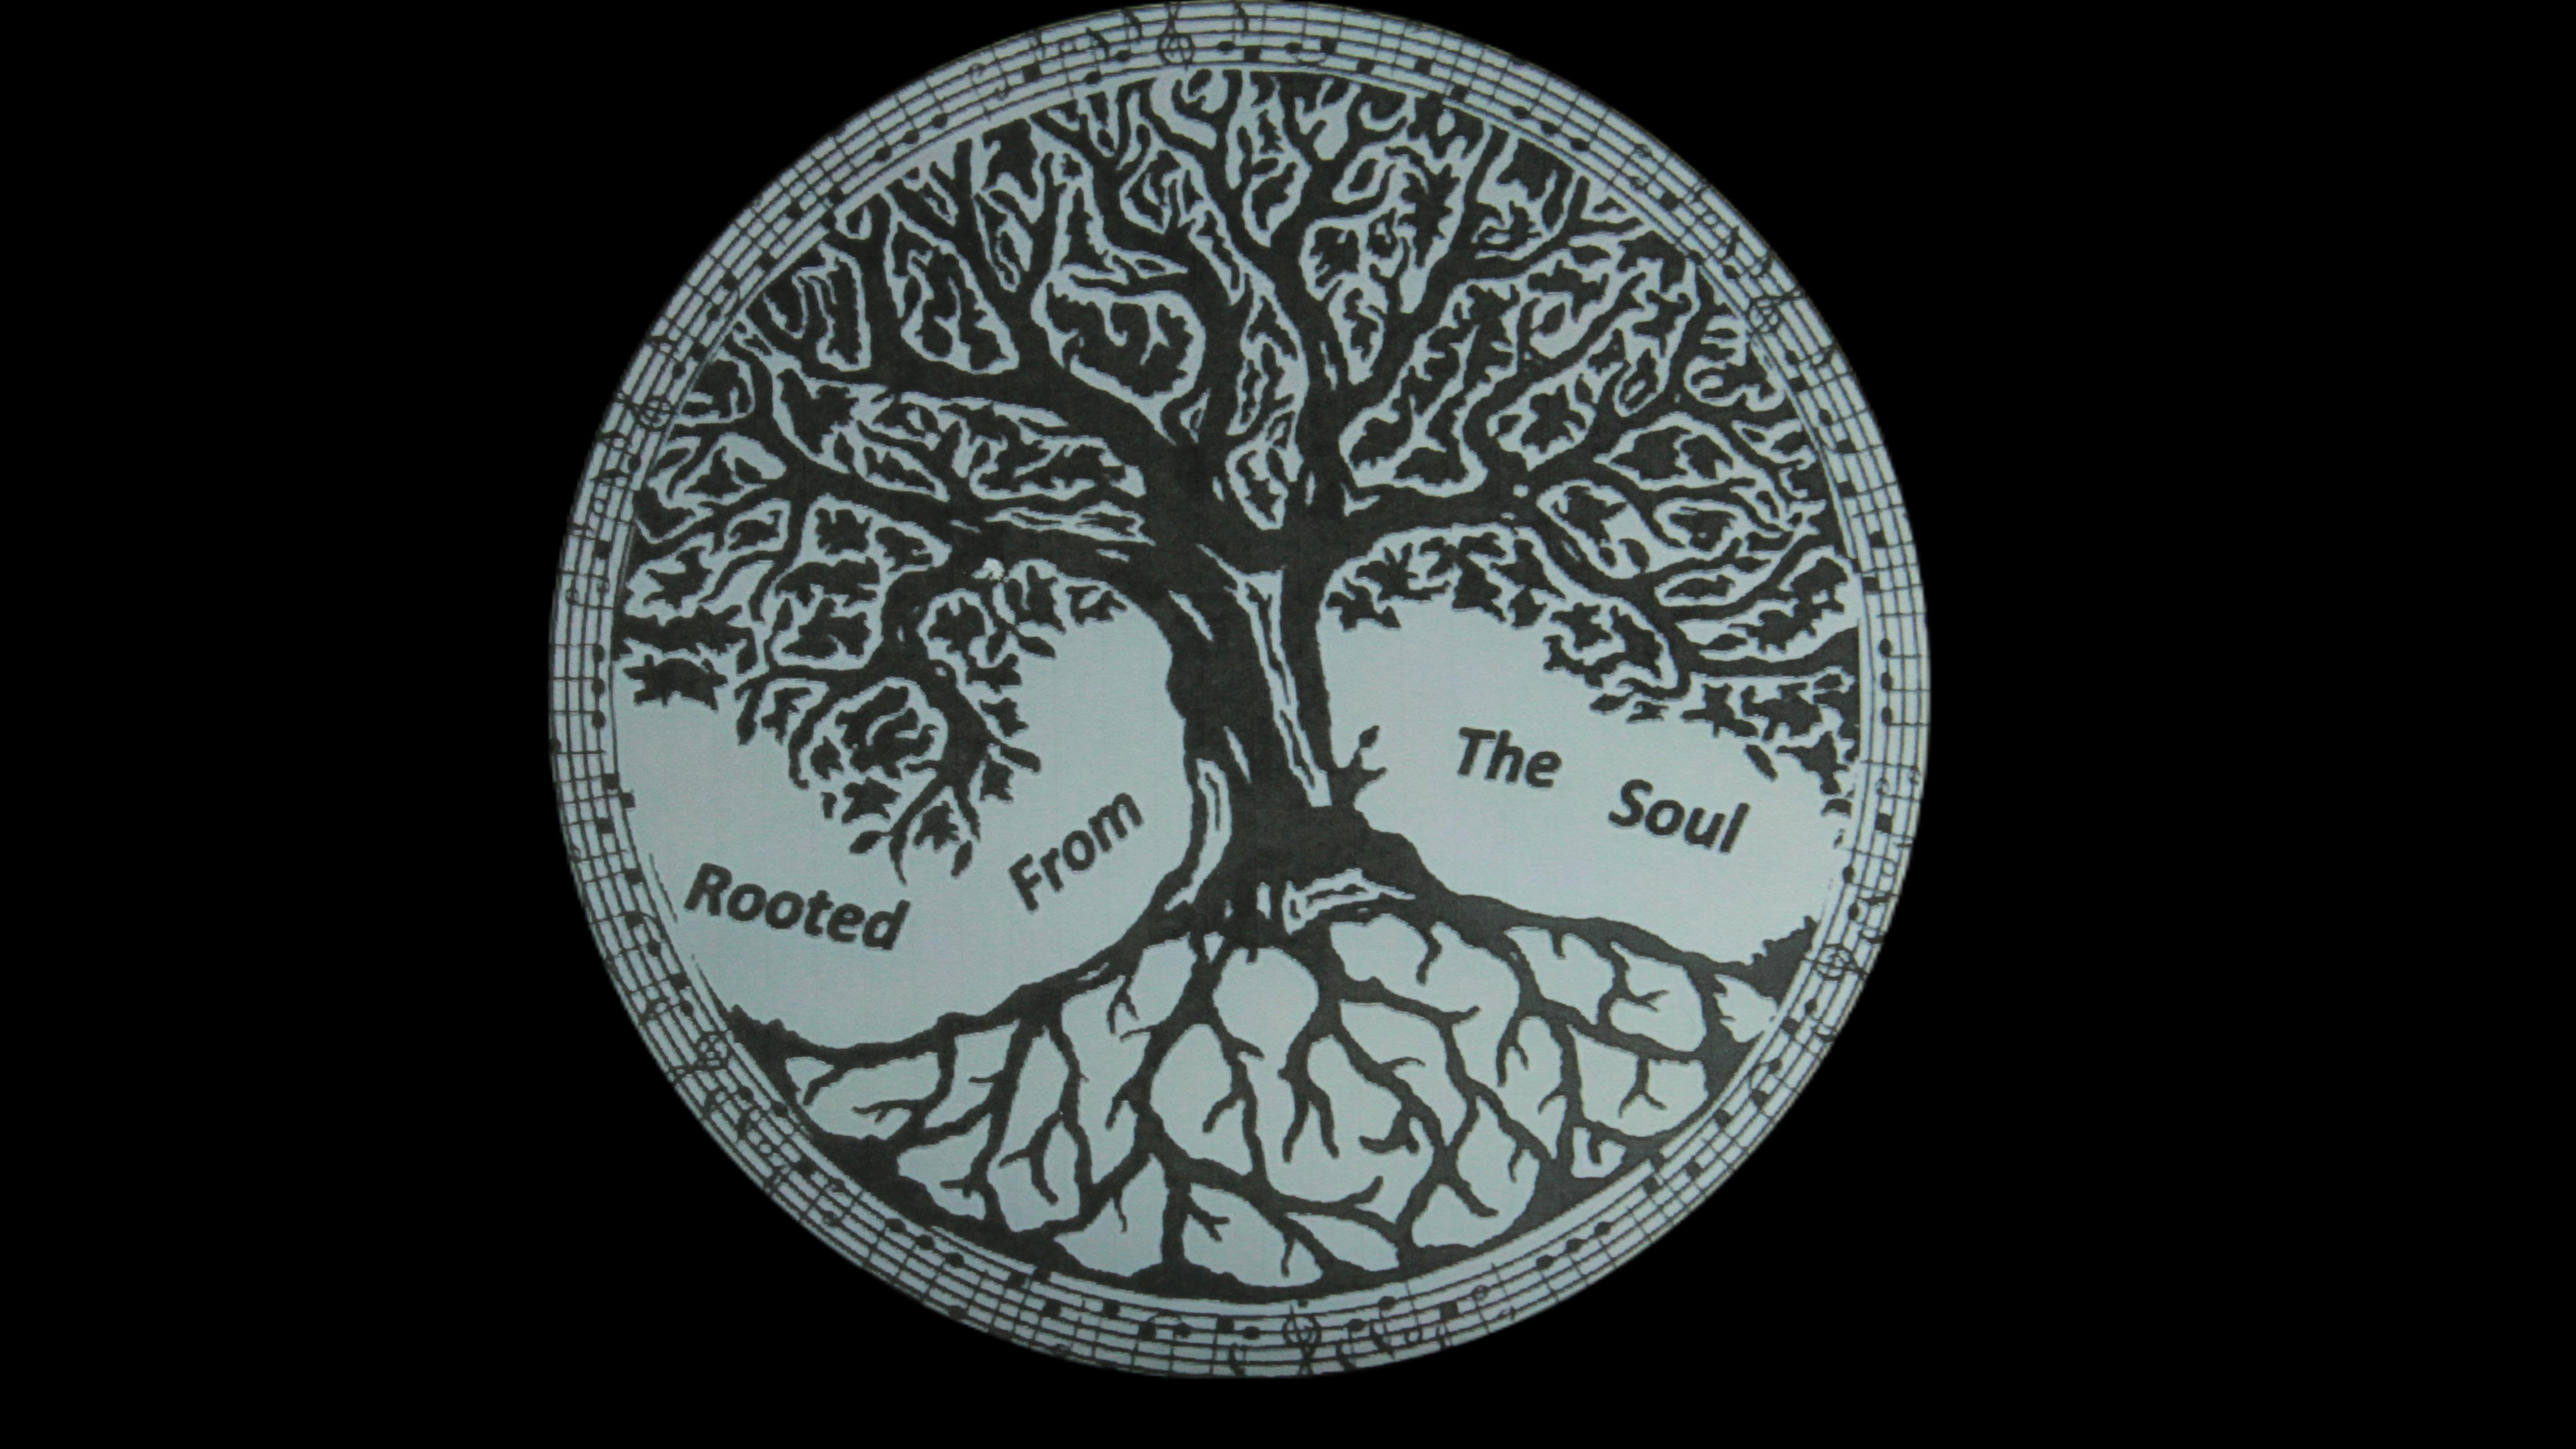 Rooted From The Soul